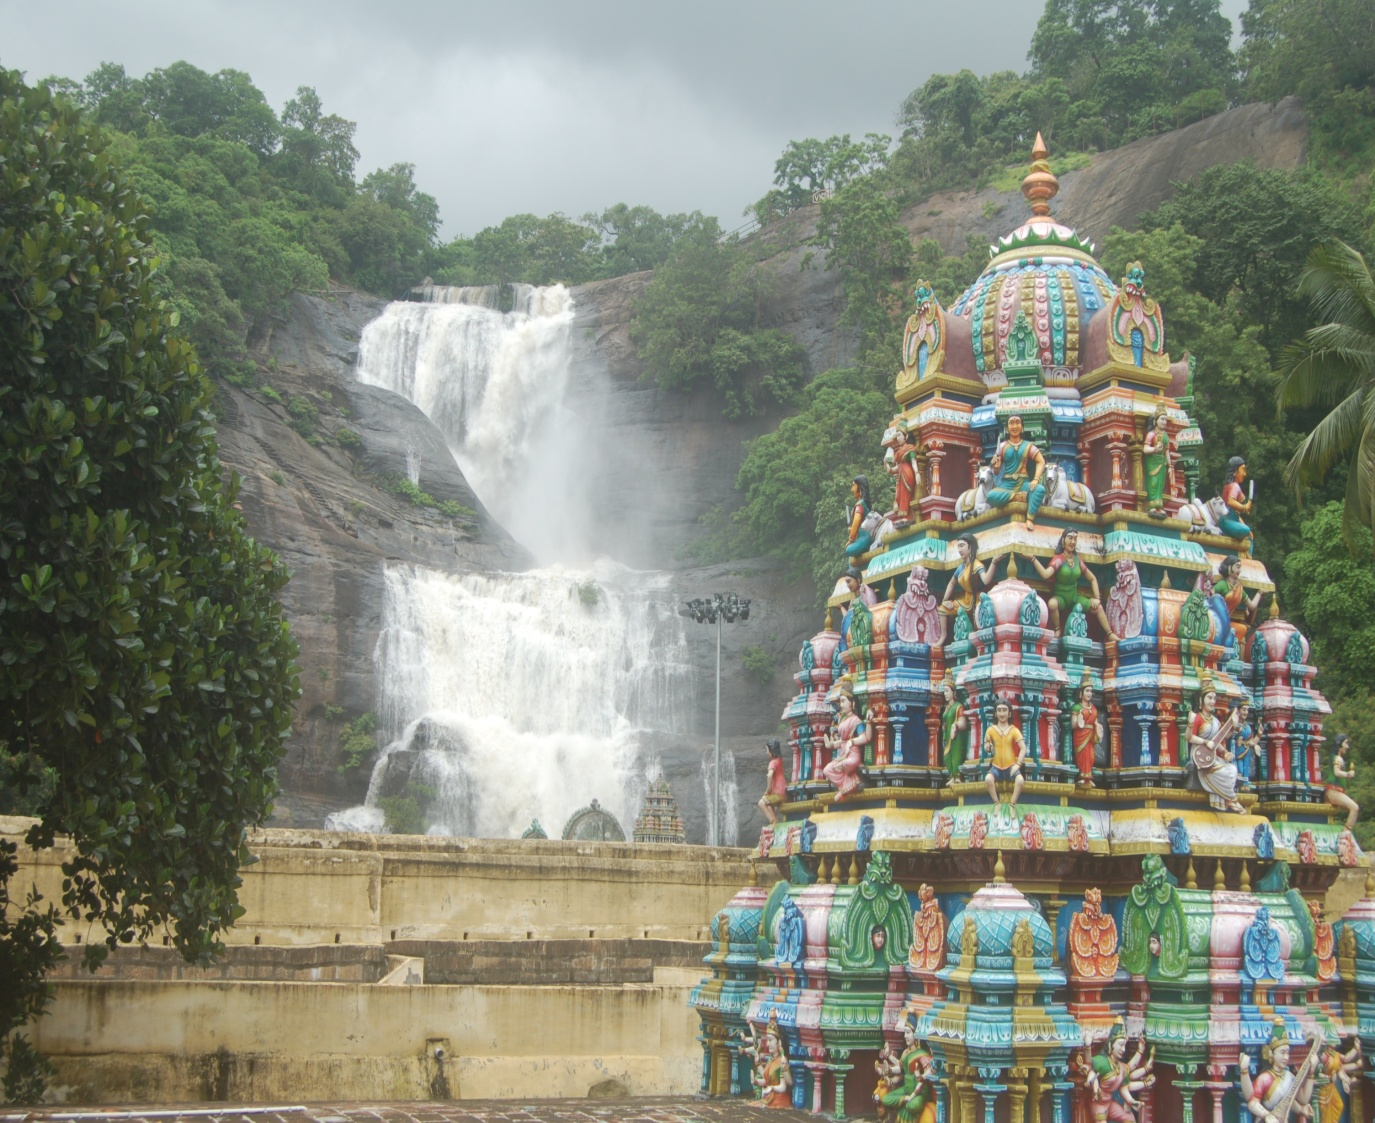 Courtallam temple